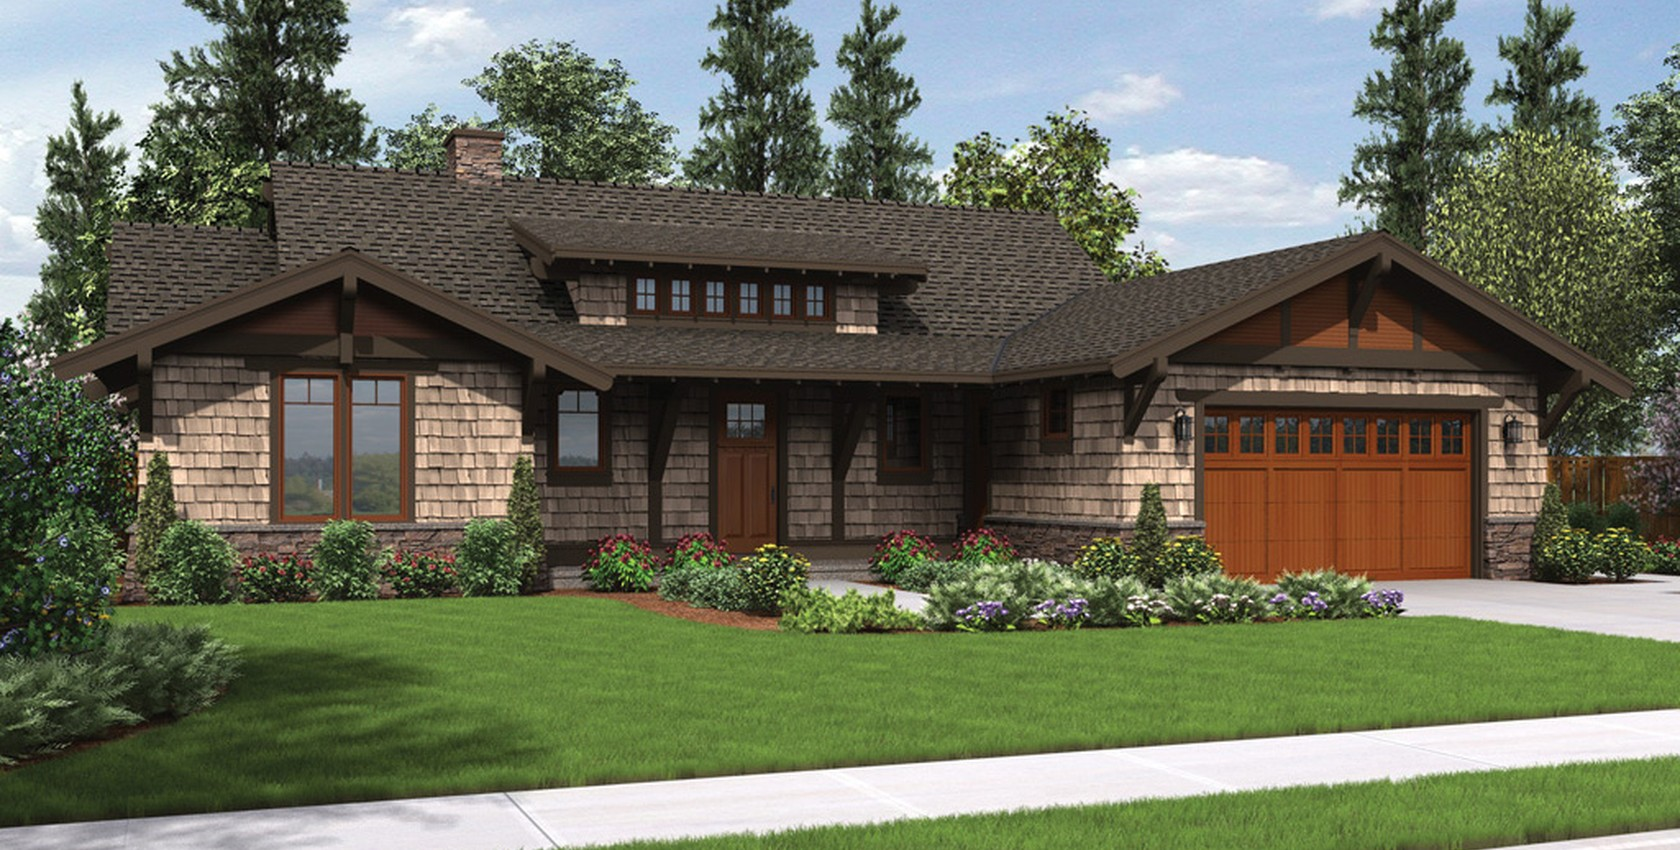 Image for Meriwether-Traditional Craftsman Ranch with Oodles of Curb Appeal - and Amenities to Match!-4305